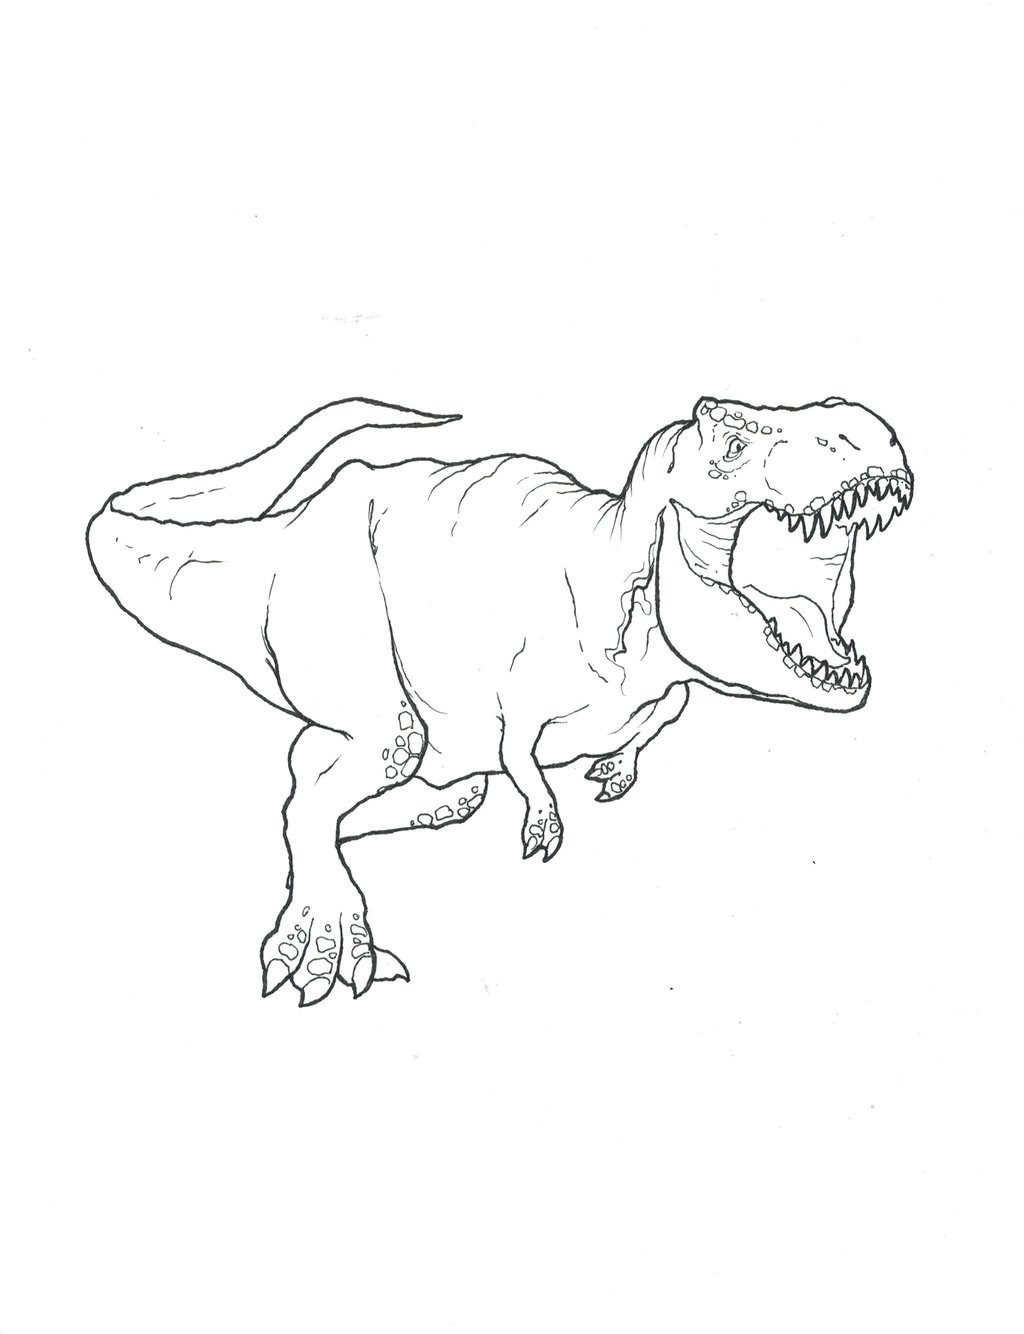 Scary Dinosaur Coloring Pages Coloring Pages Free Dinosaurring Pages Scary For Kids Preschoolers